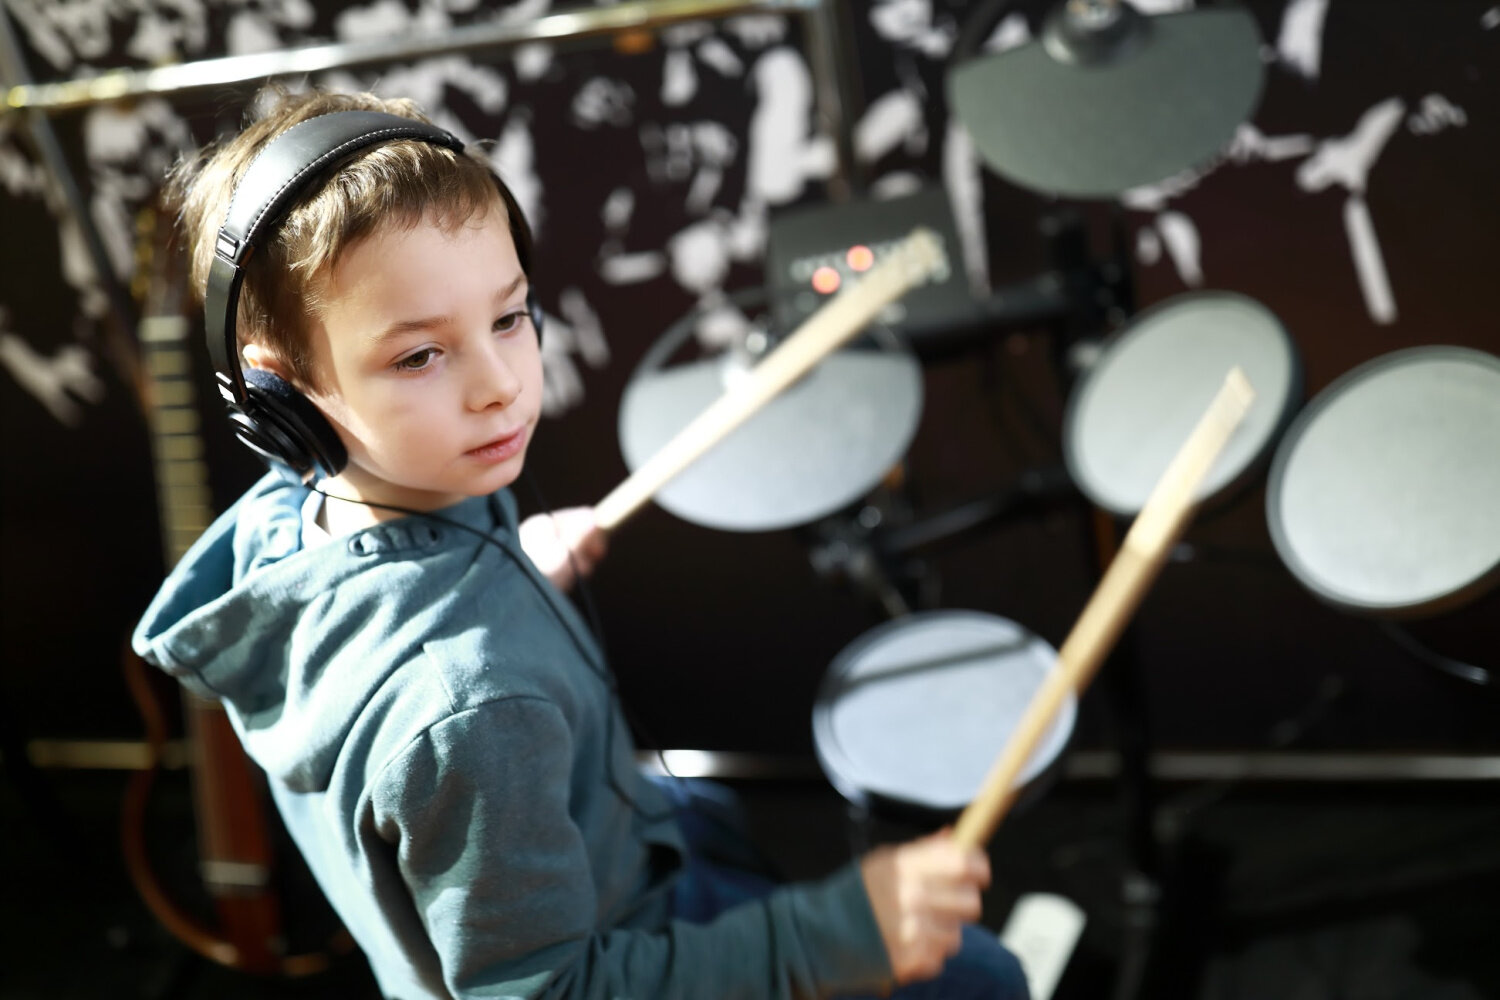 Drum Lessons   in Mendota Heights   for beginner, intermediate, and advanced students of all ages   CALL 651-263-9475 TO SCHEDULE YOUR FIRST LESSON   REQUEST INFO